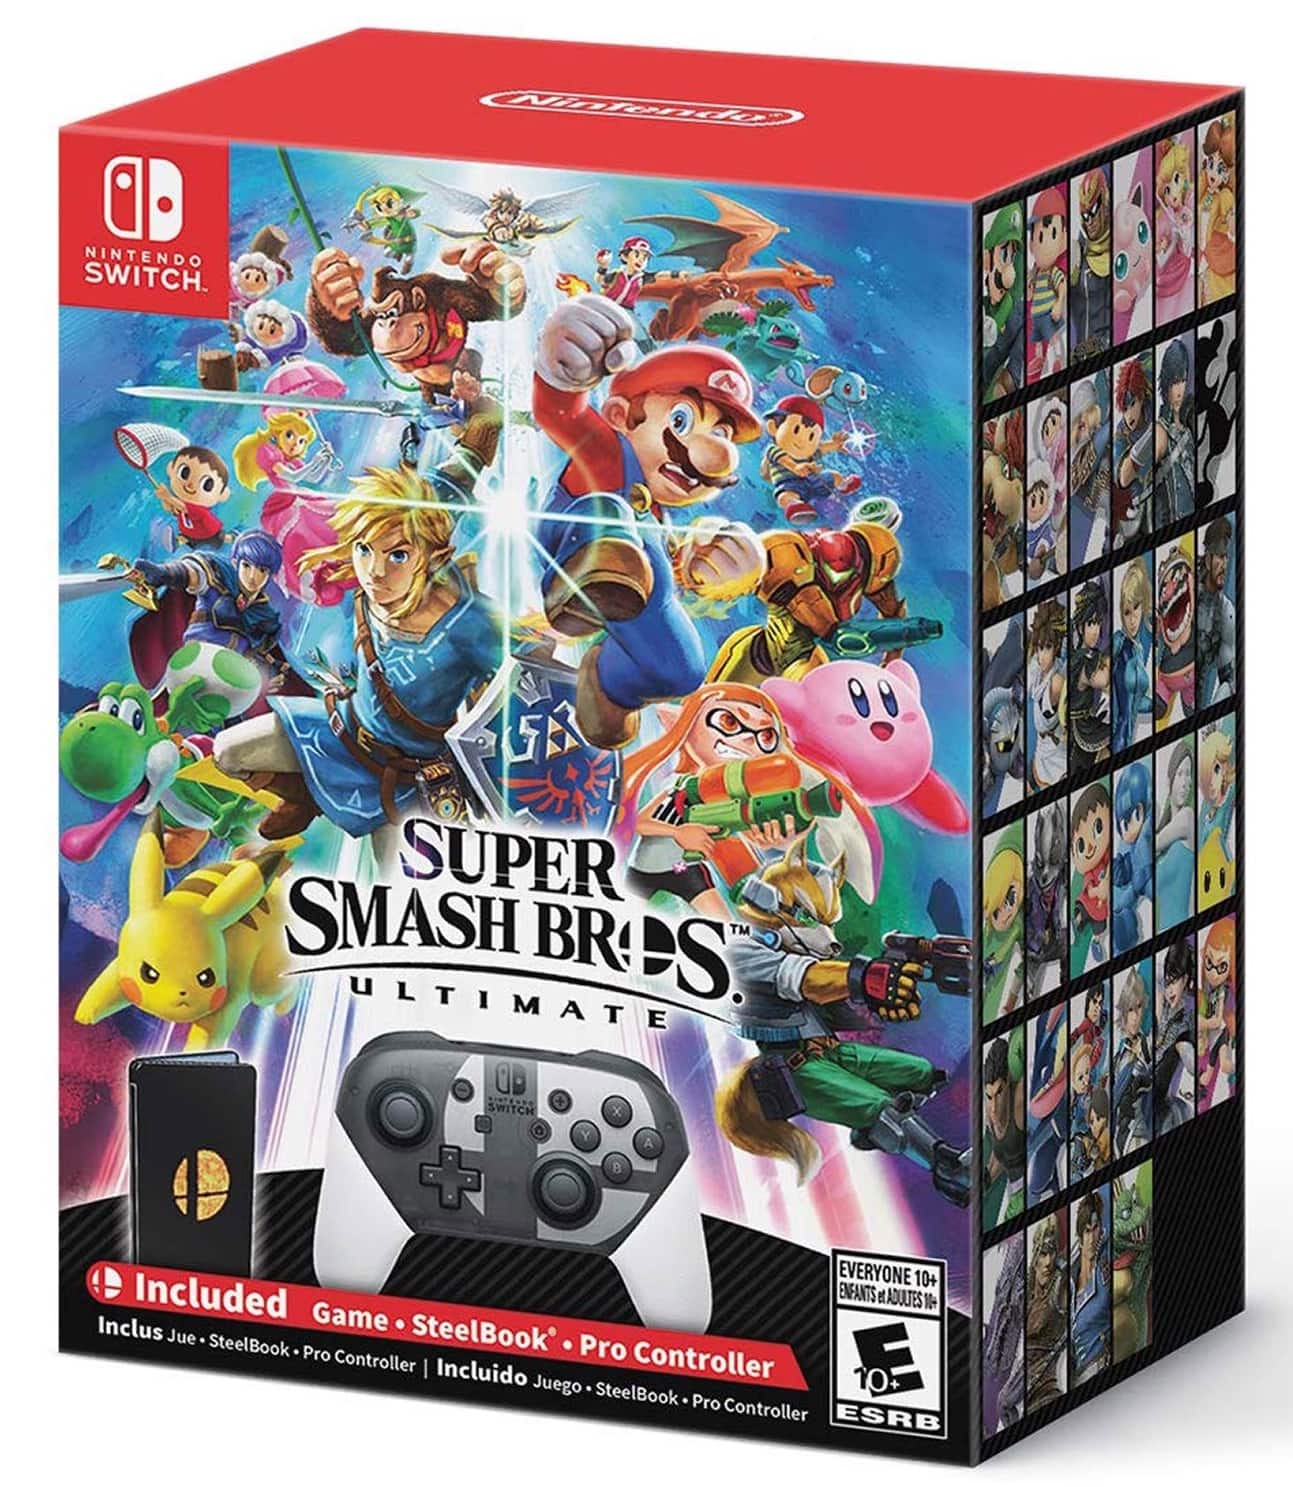 Super Smash Bros. Ultimate Special Edition - Nintendo Switch - Target B&M YMMV $139.99